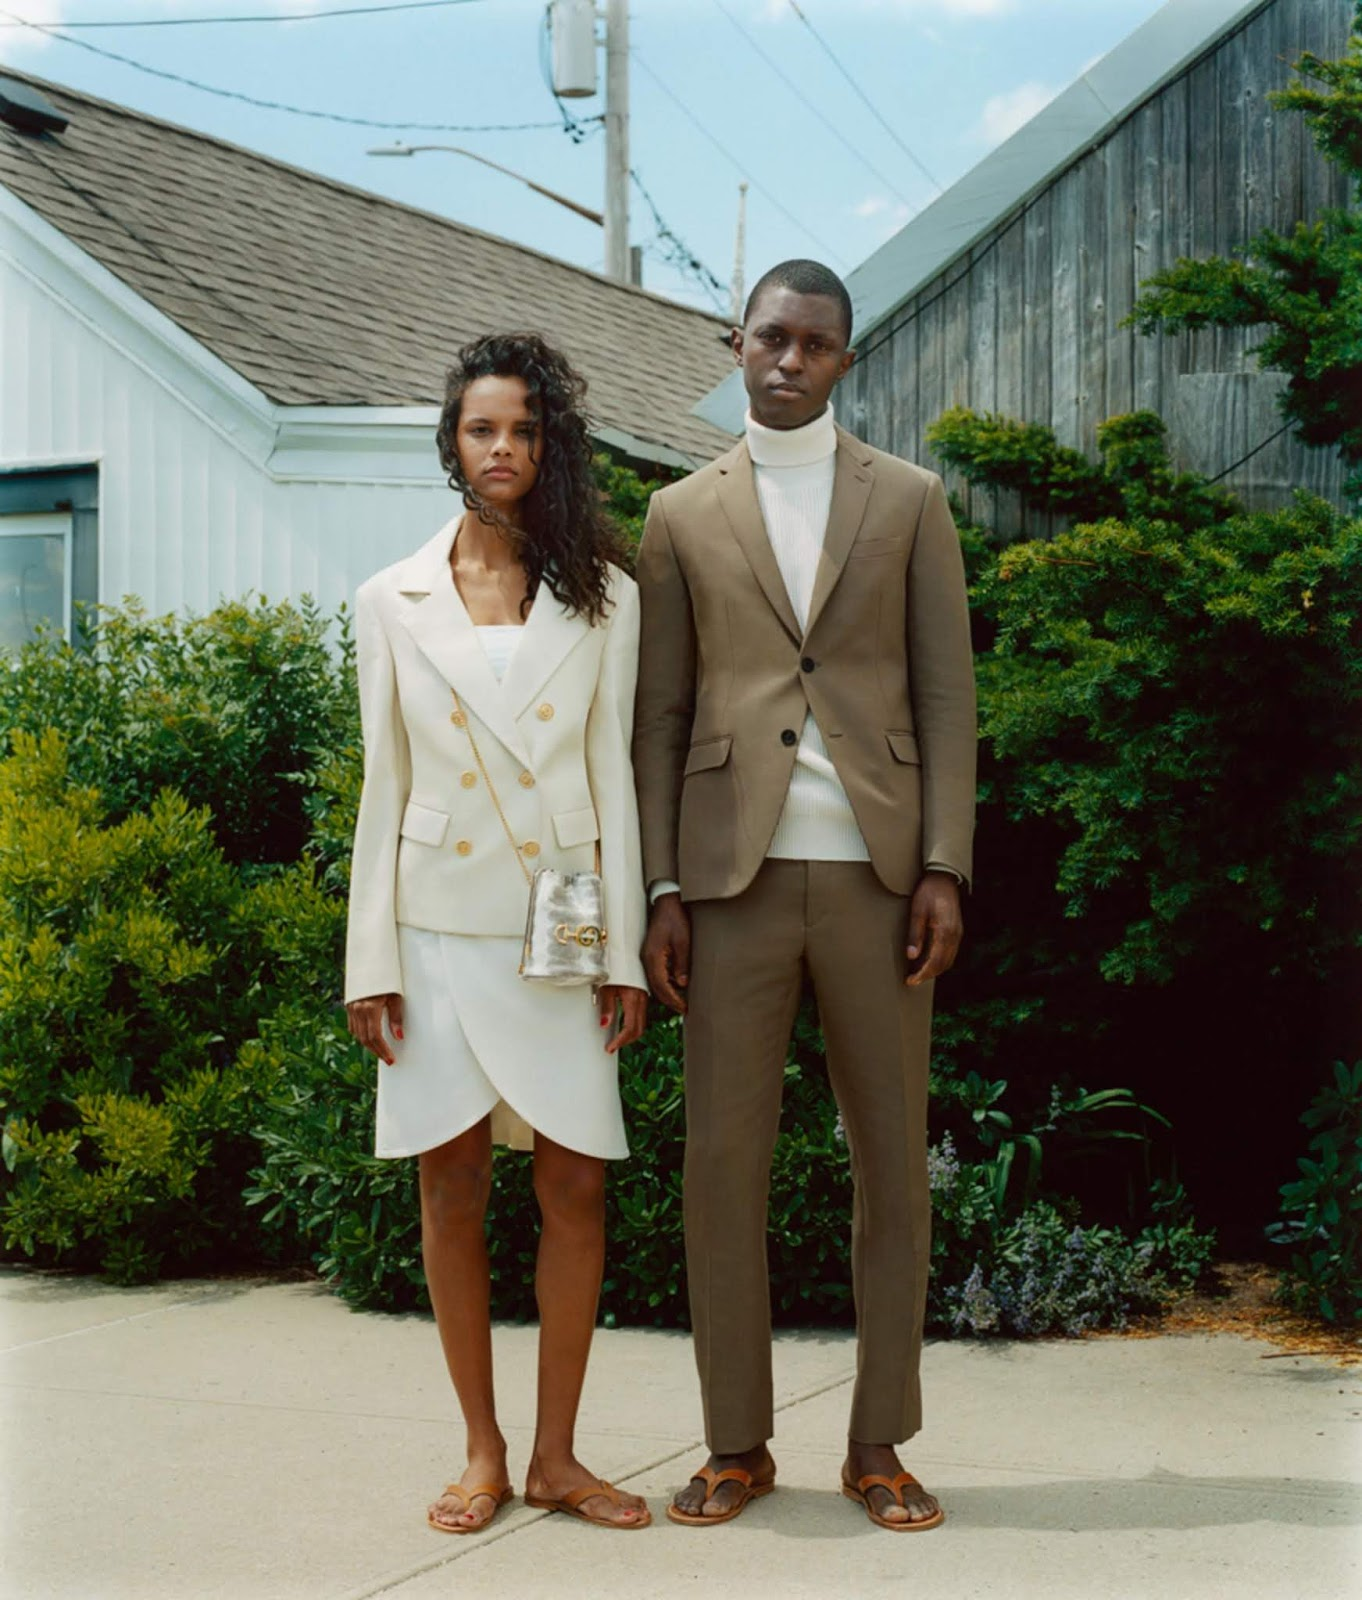 Neutral Suiting by Charlie Gates for WSJ Magazine July 2019 -  (1).jpg